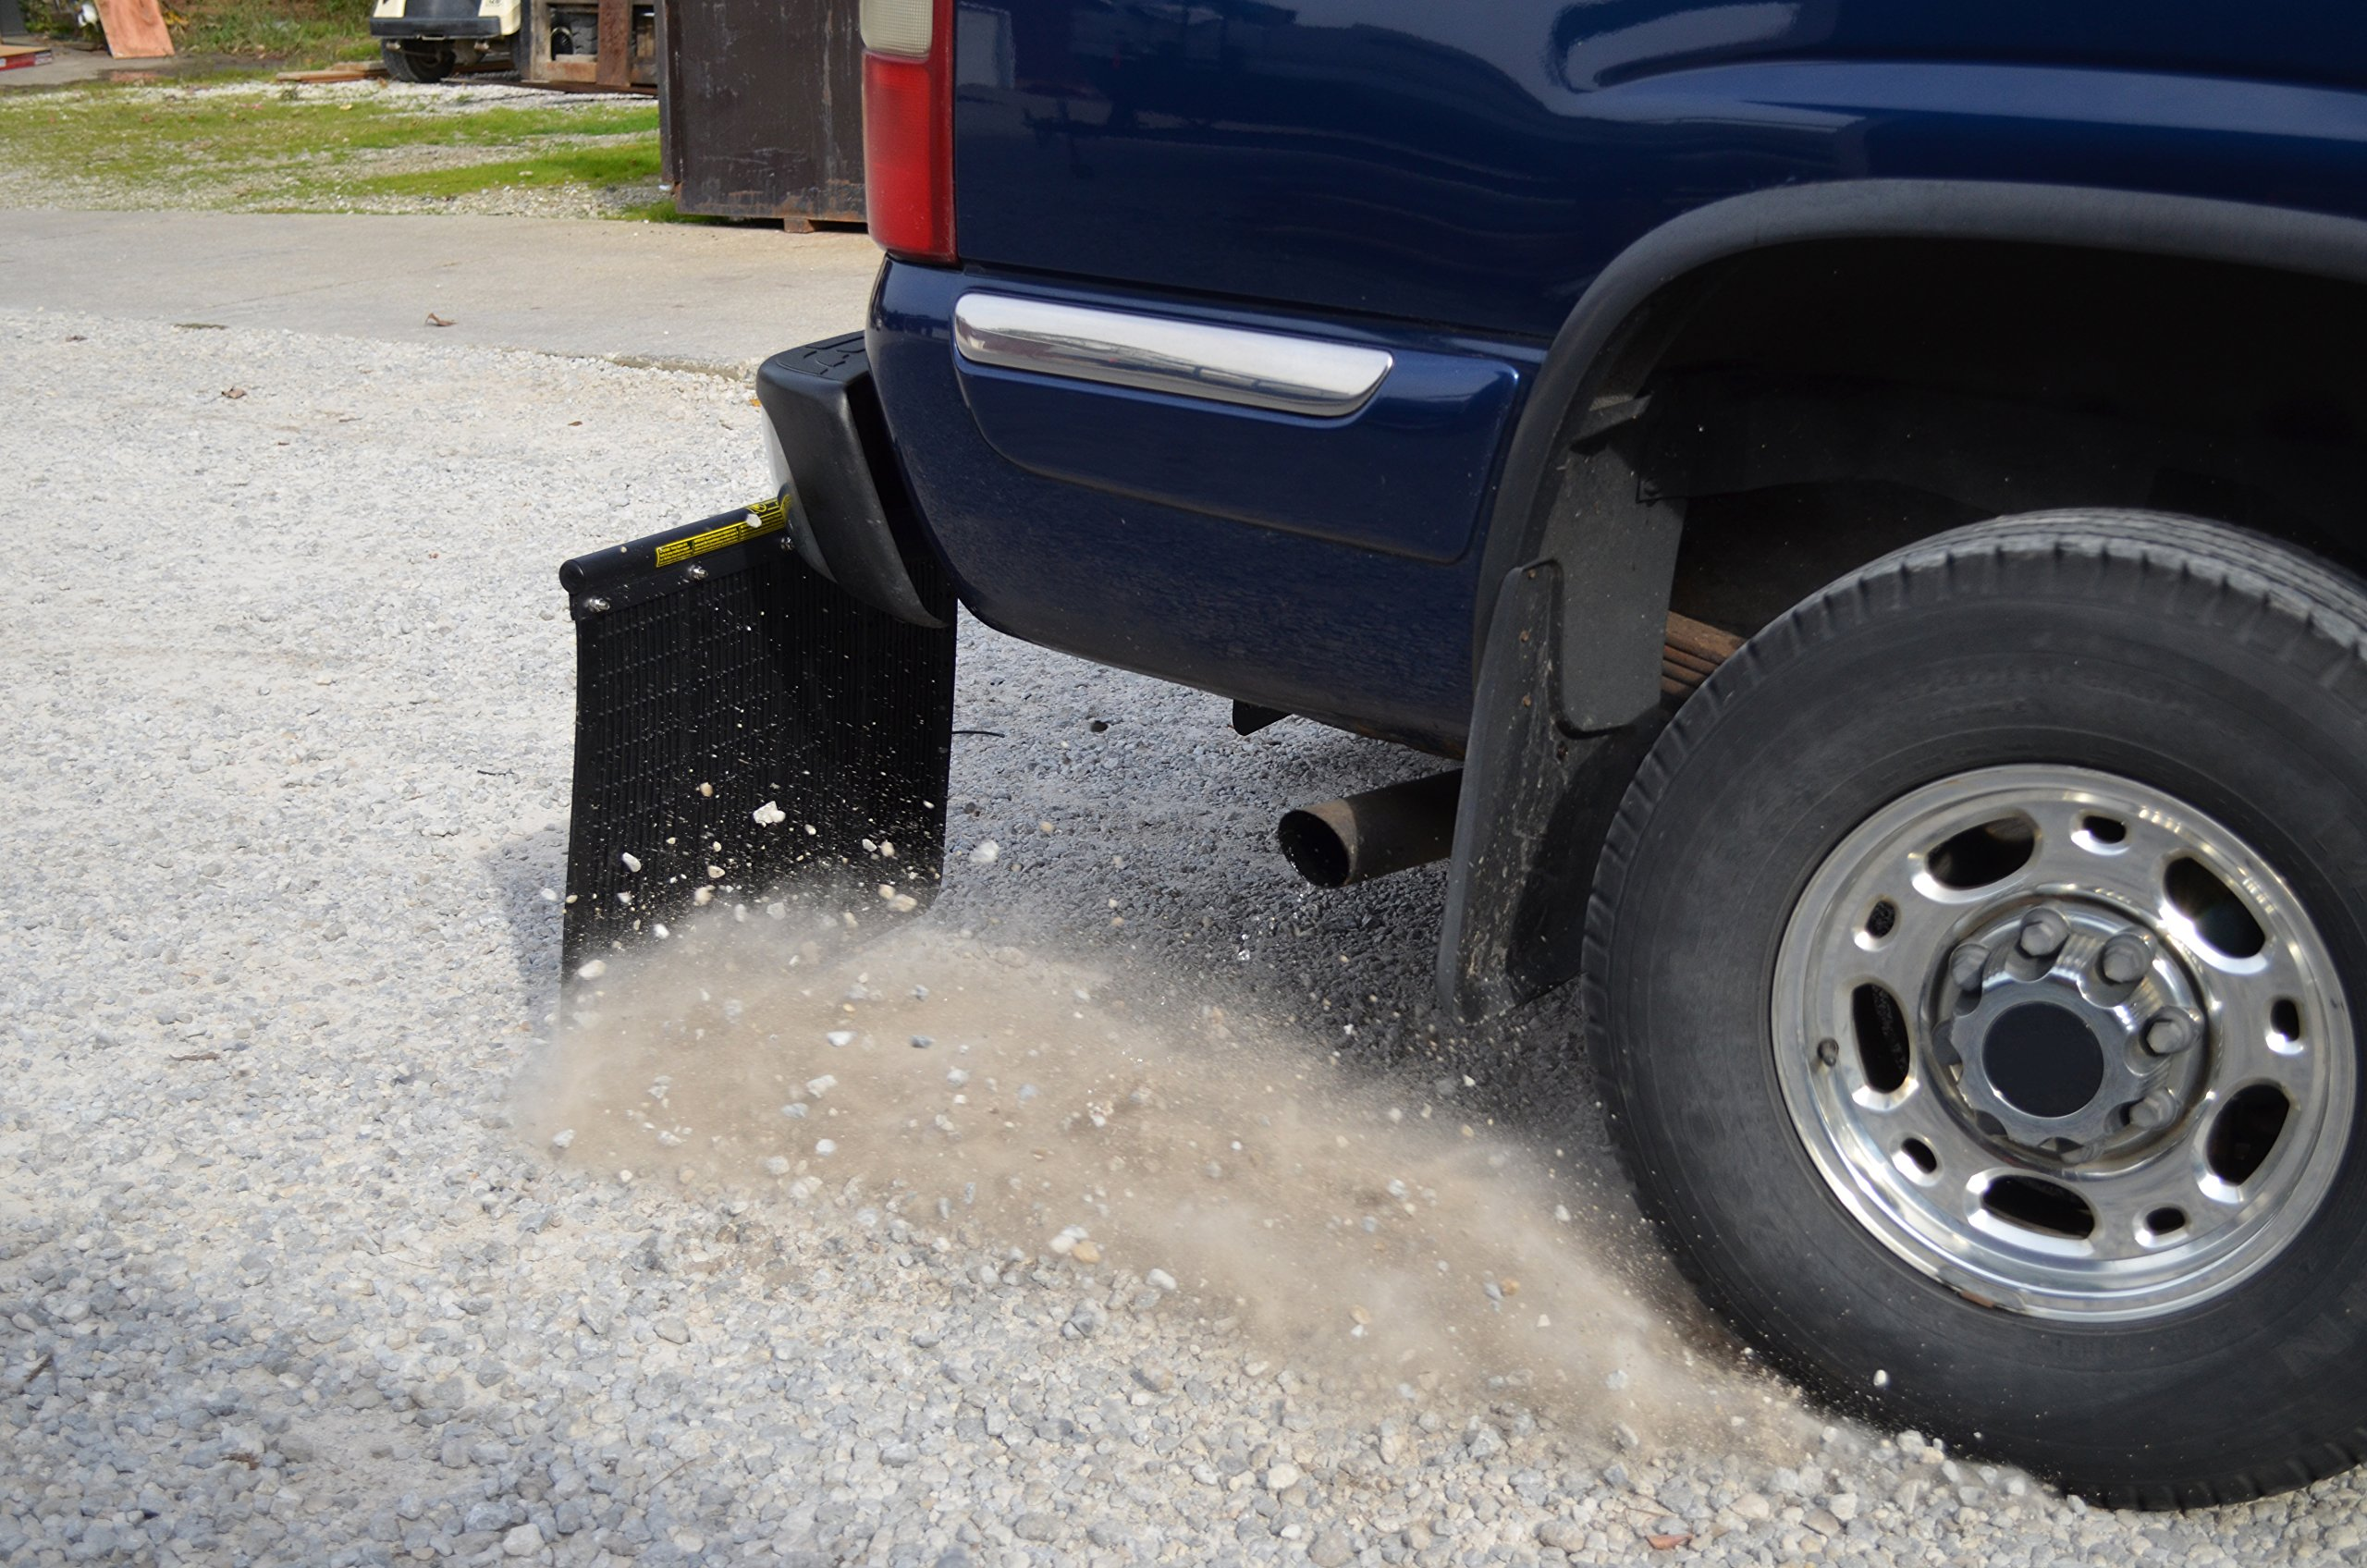 ROCK TAMERS (00110) 2.5'' Hub Mudflap System with Matte Black Stainless Steel Trim Plates by Rock Tamers (Image #7)